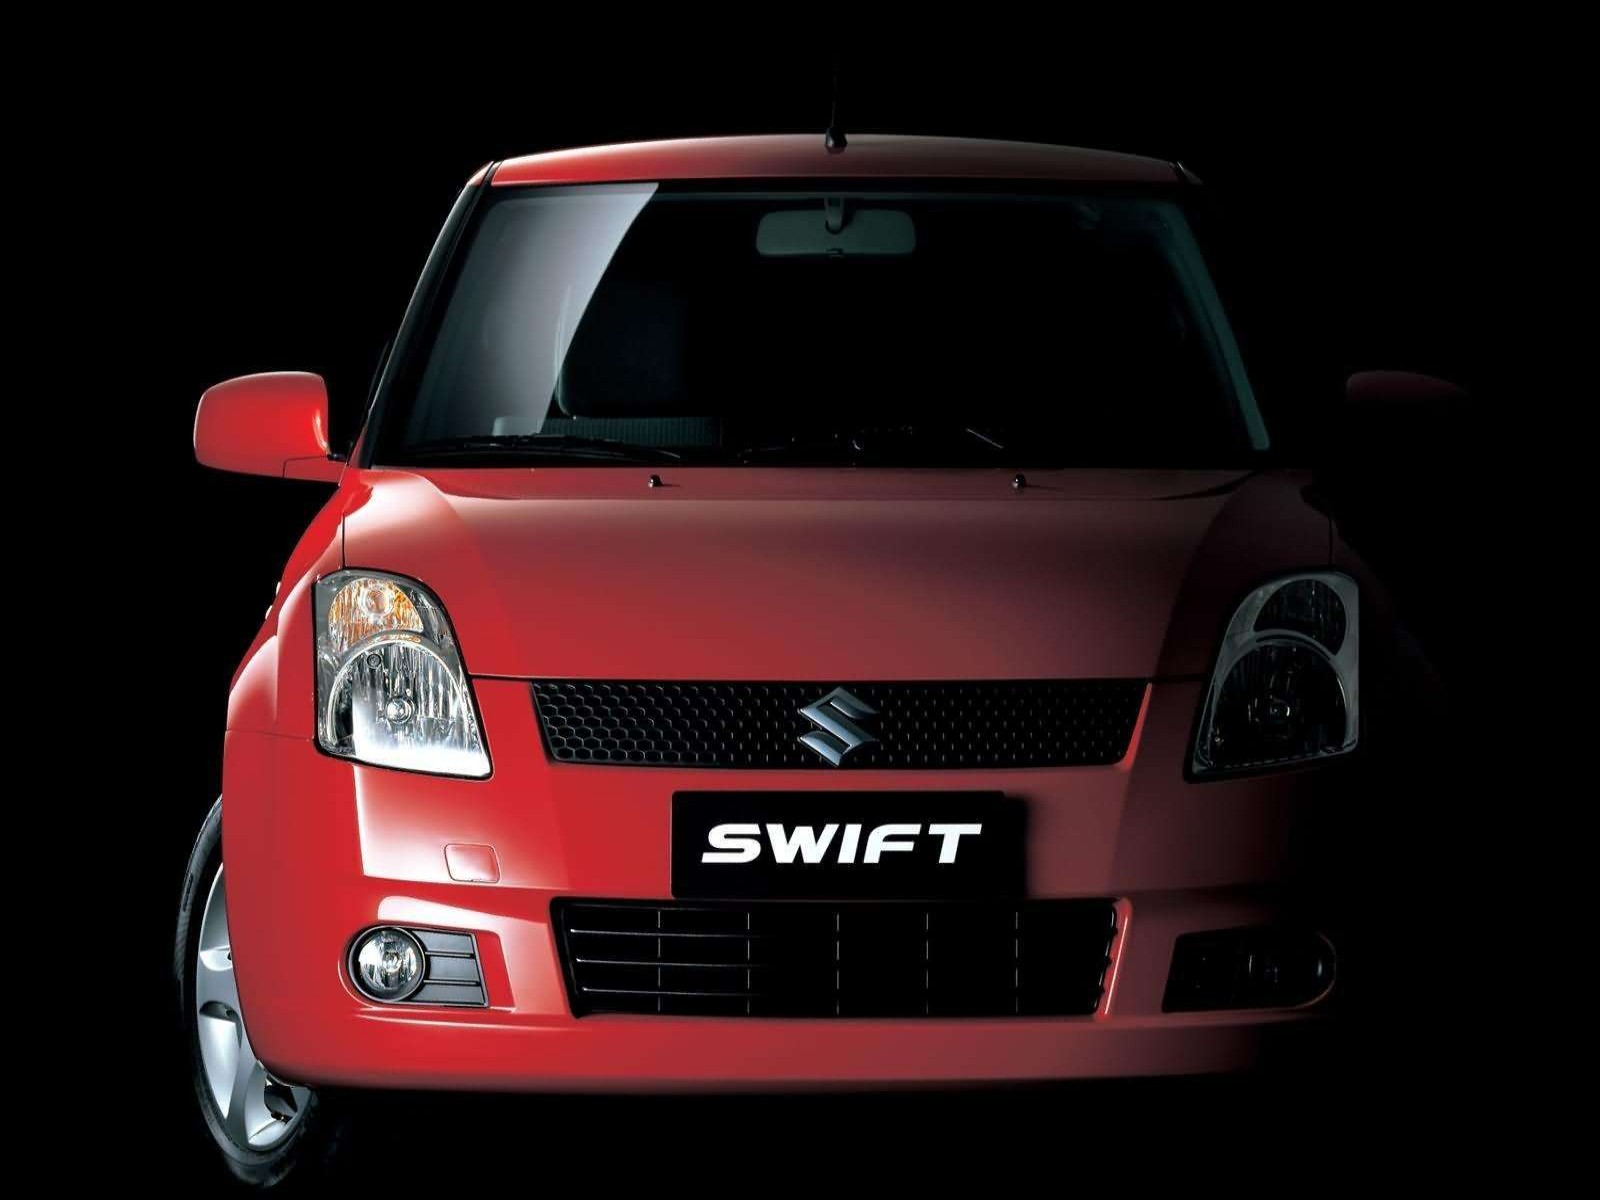 Suzuki Swift VVT model 2005 wallpaper 4